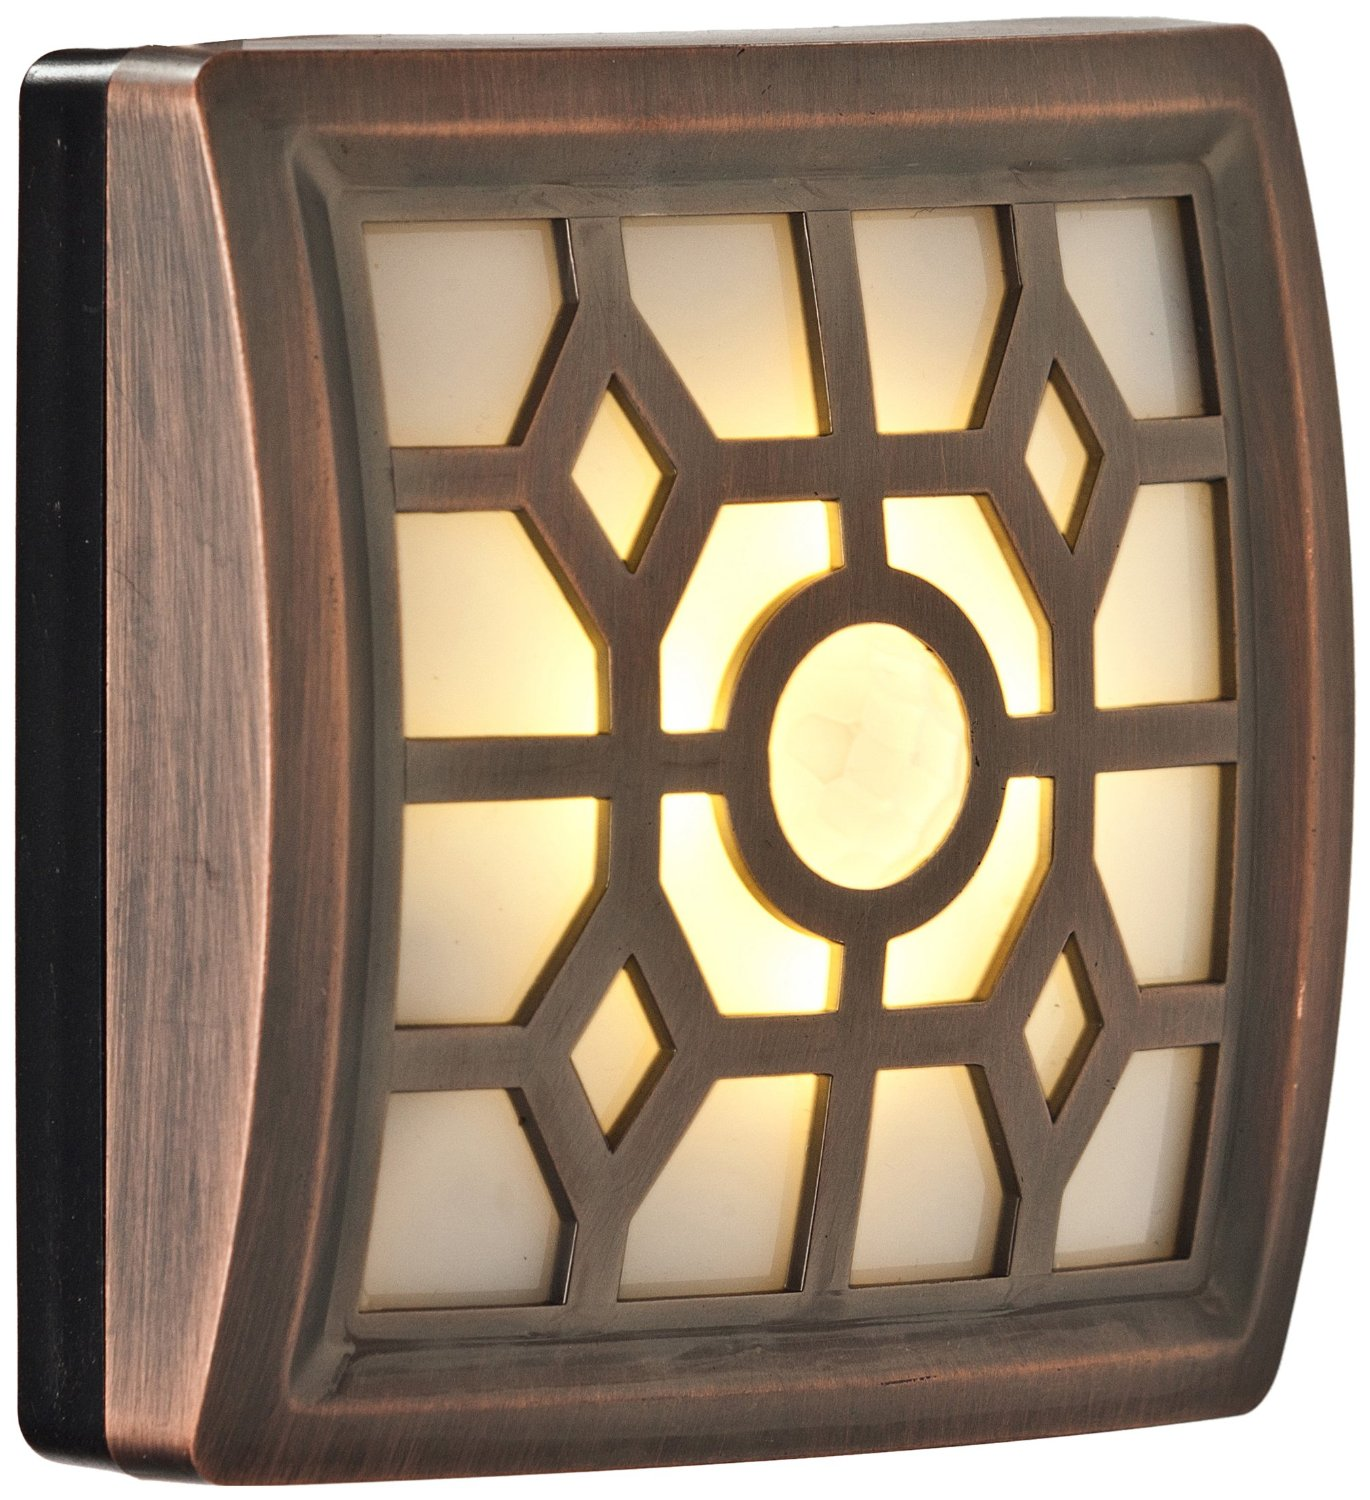 Light It! by Fulcrum 30300-307, 4 LED Wireless Soft-Glow Indoor/Outdoor Motion Sensor Light with Filigree Pattern, 3.5 Inch, Bronze